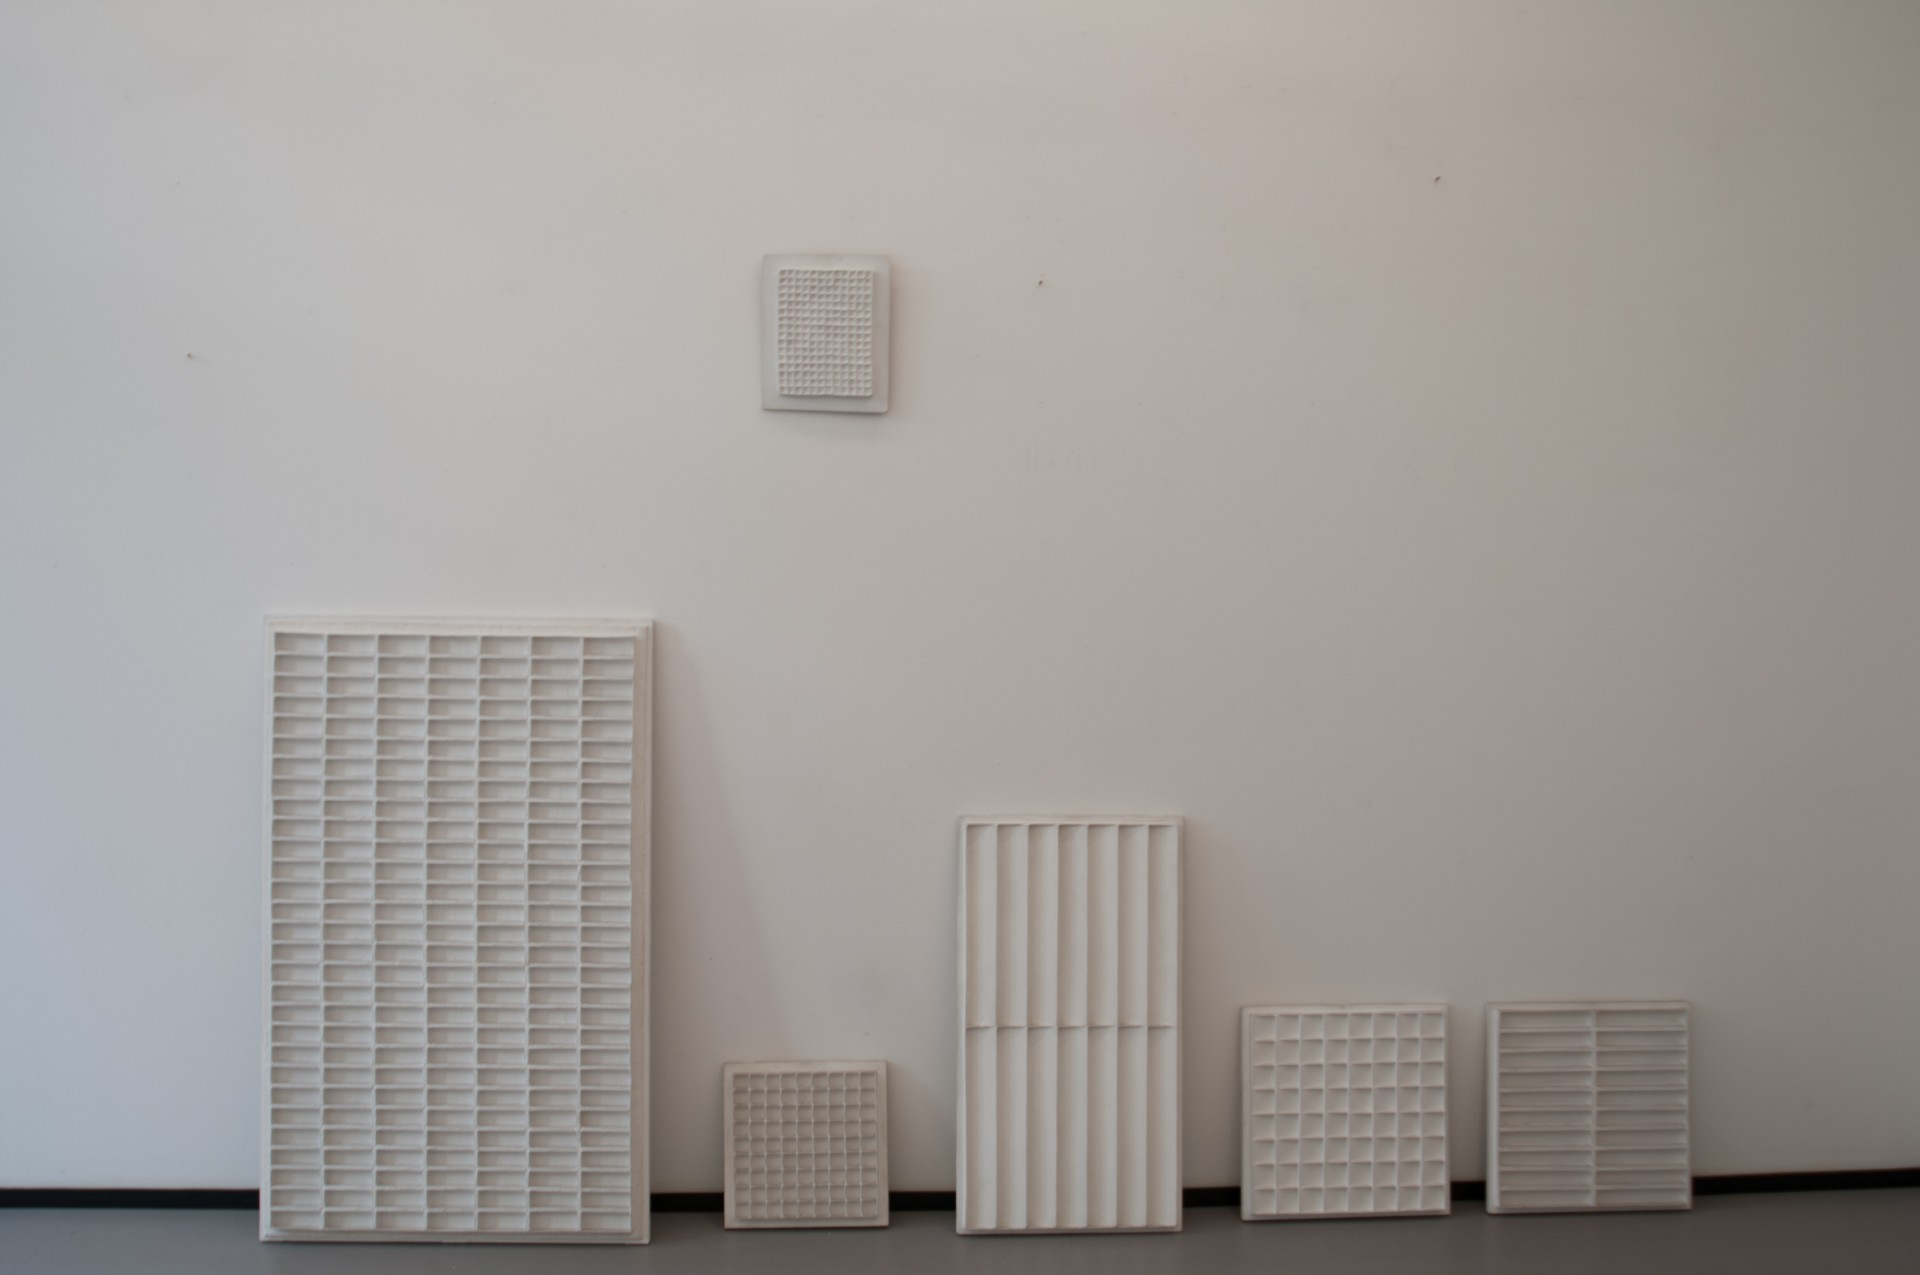 Borzo Gallery in Amsterdam presenteert     Announcement: Jan Schoonhoven | Catalogue Raisonné